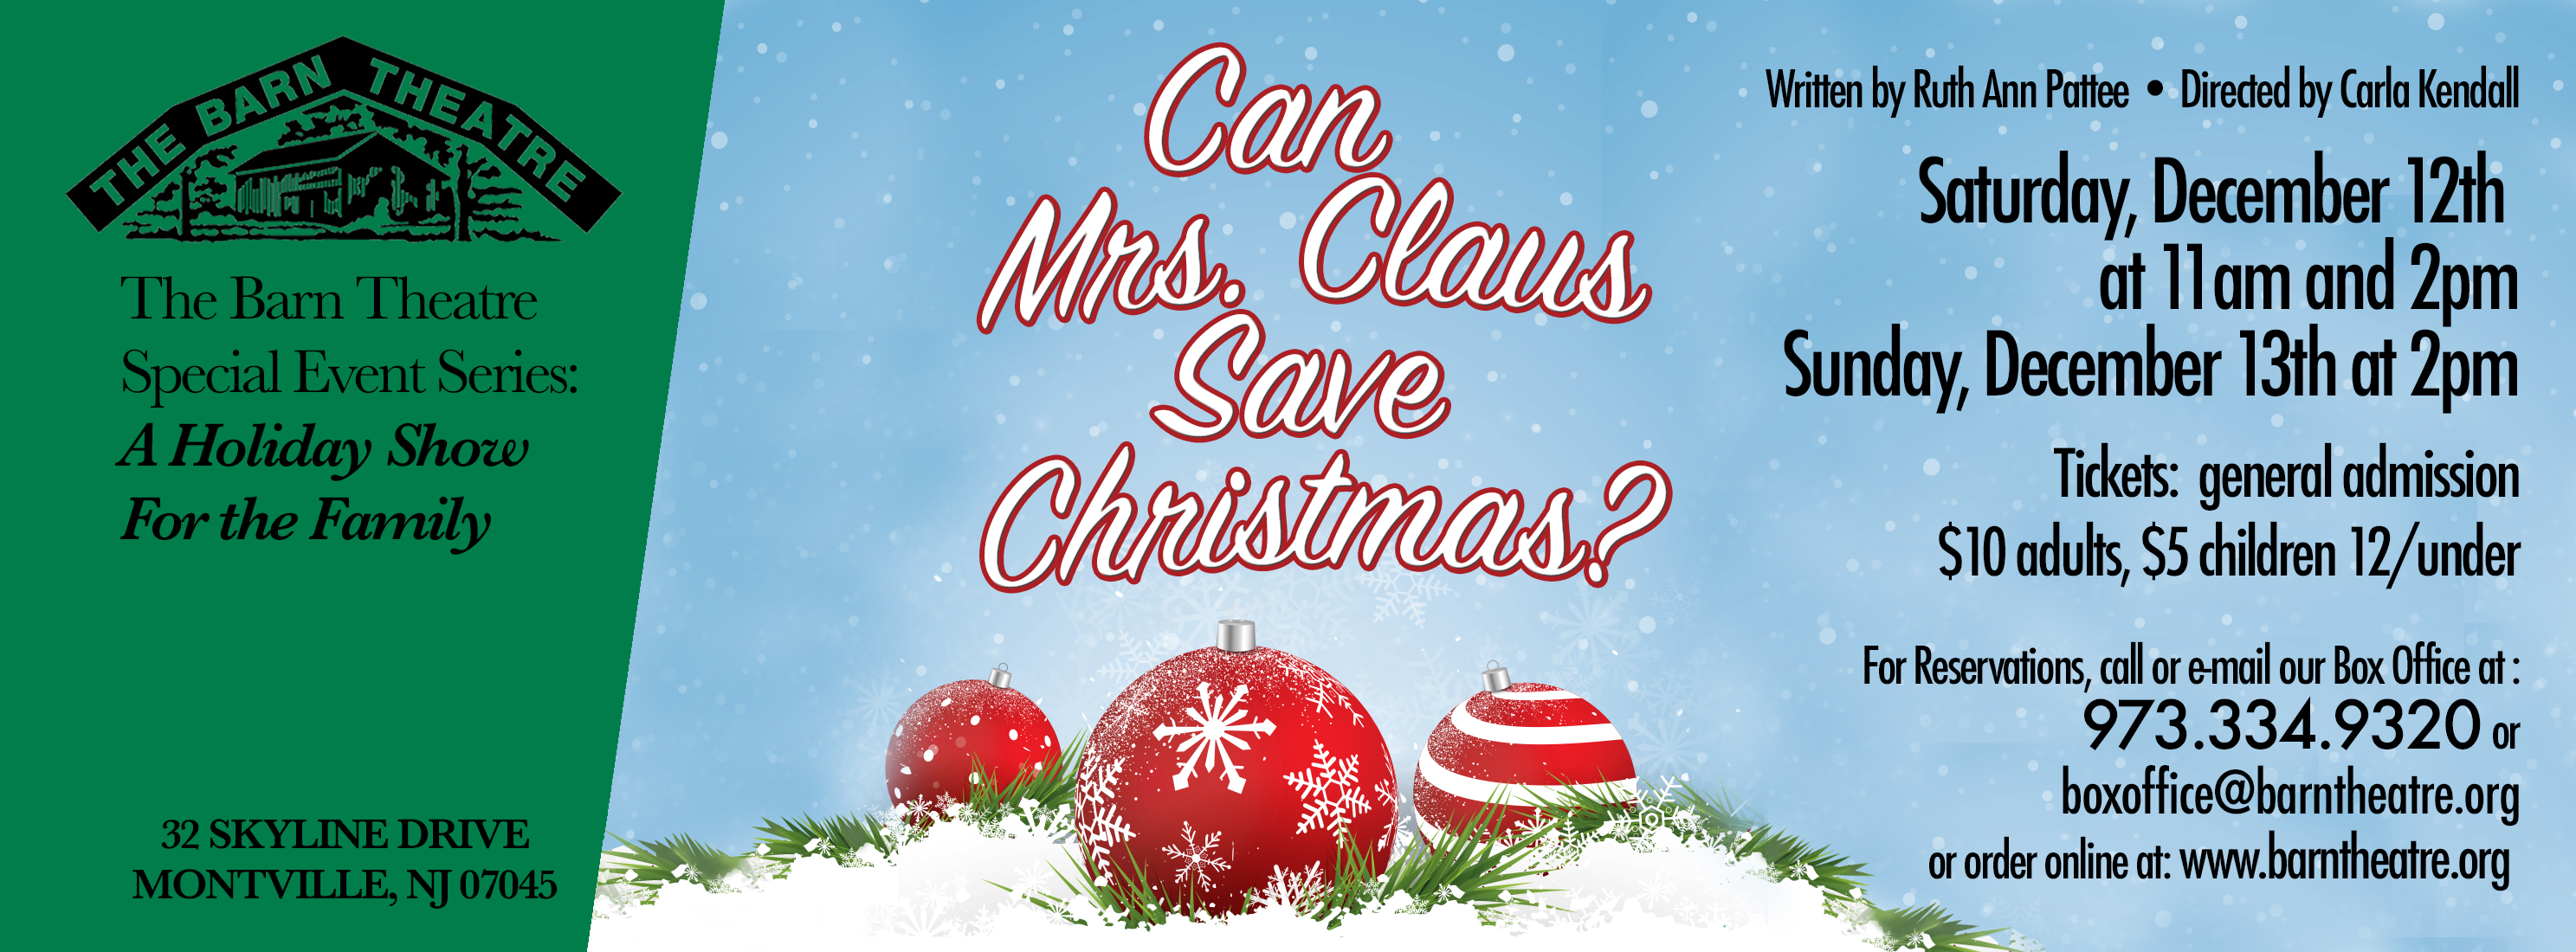 Can Mrs. Claus Save Christmas? December 12 and 13, 2015